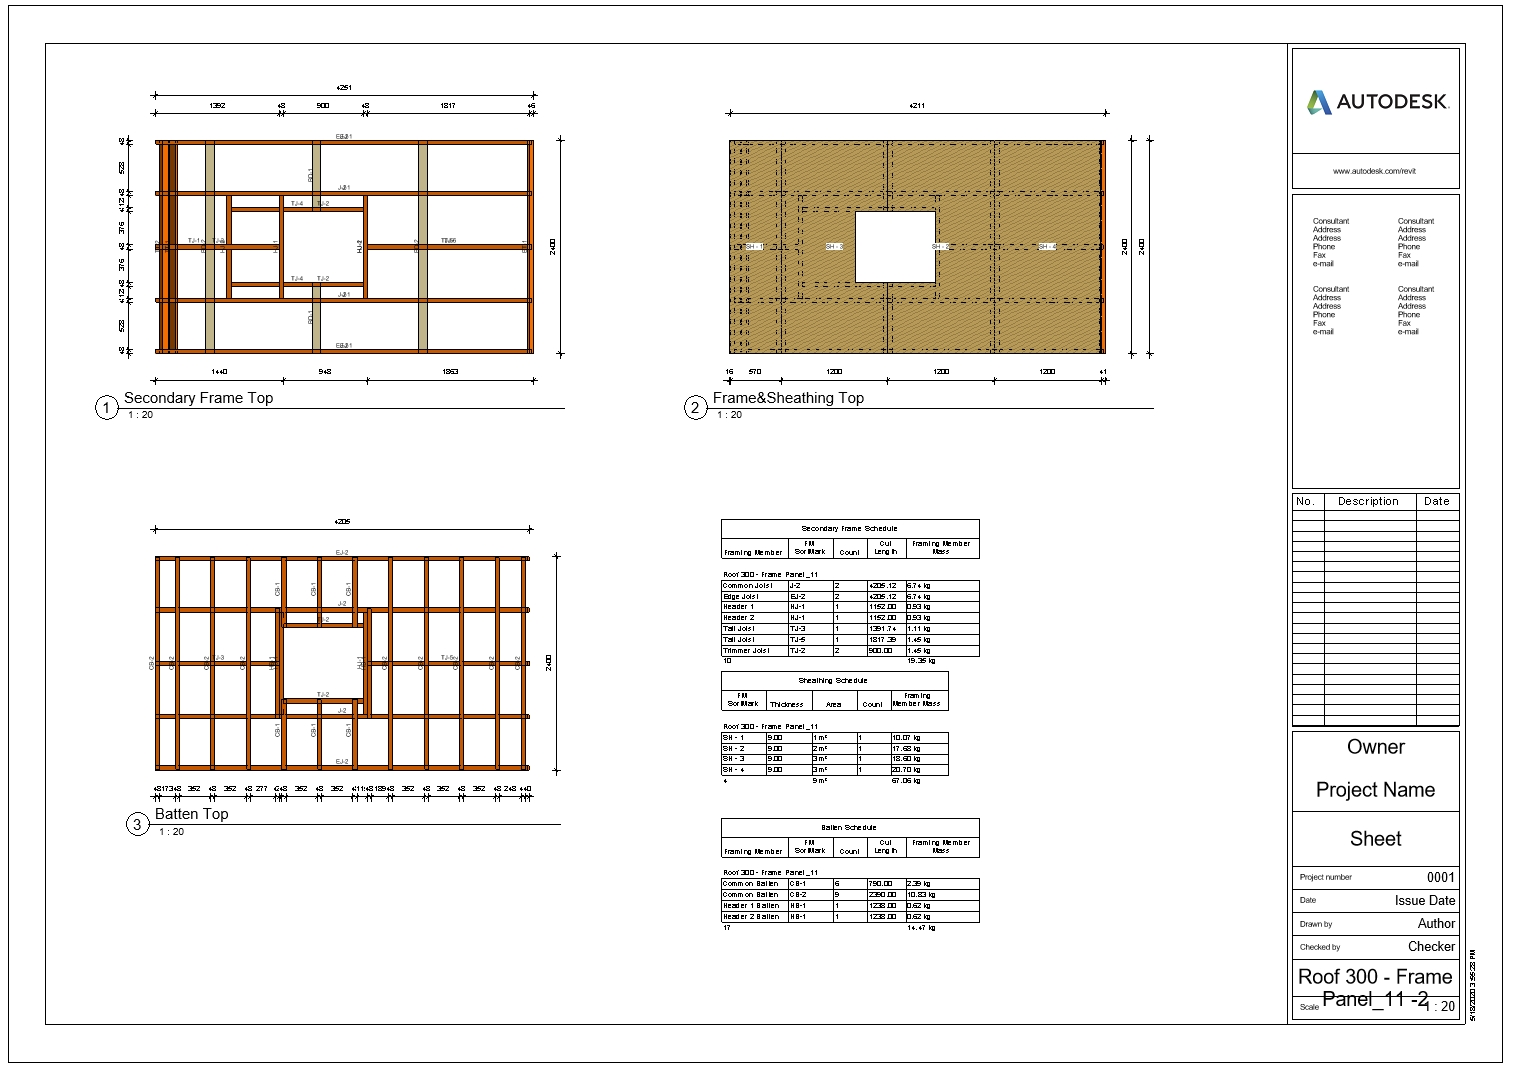 create shop drawings for roof layers like sheathing, battens, primary/secondary frames in Autodesk Revit using AGACAD Roof Framing BIM tools